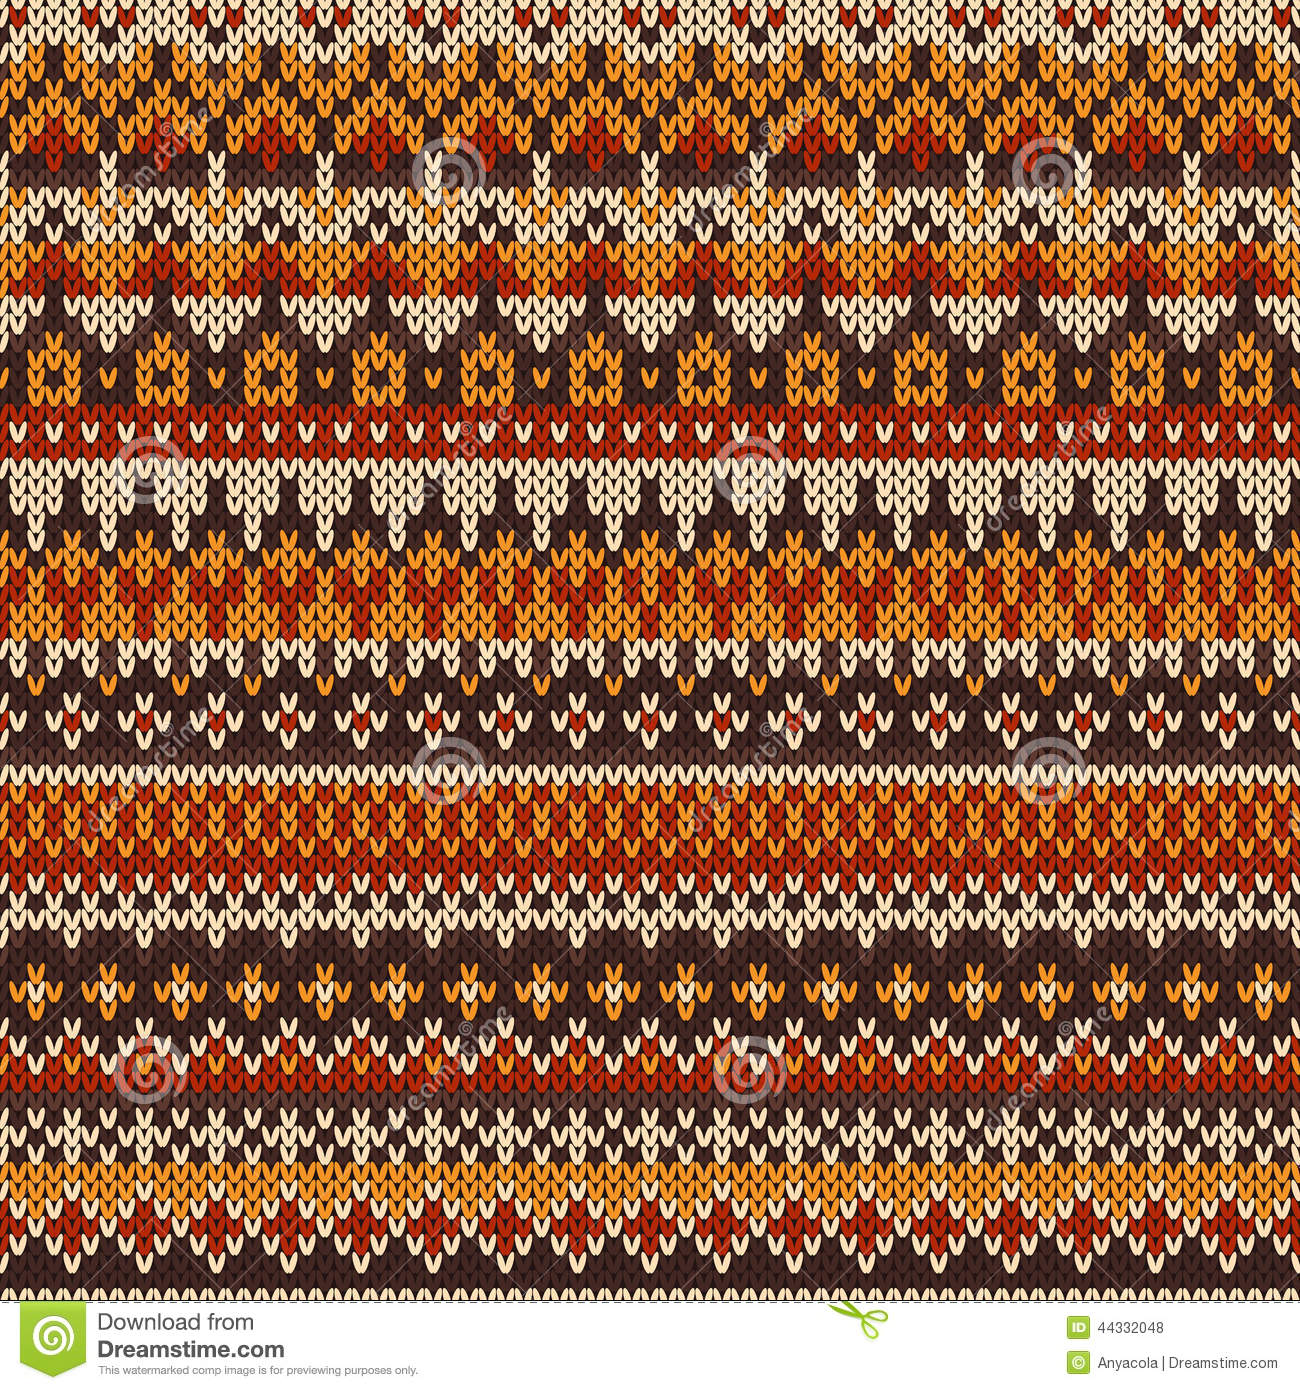 Fair Isle Patterns For Knitting : Seamless Knitted Pattern In Fair Isle Style Stock Vector - Image: 44332048